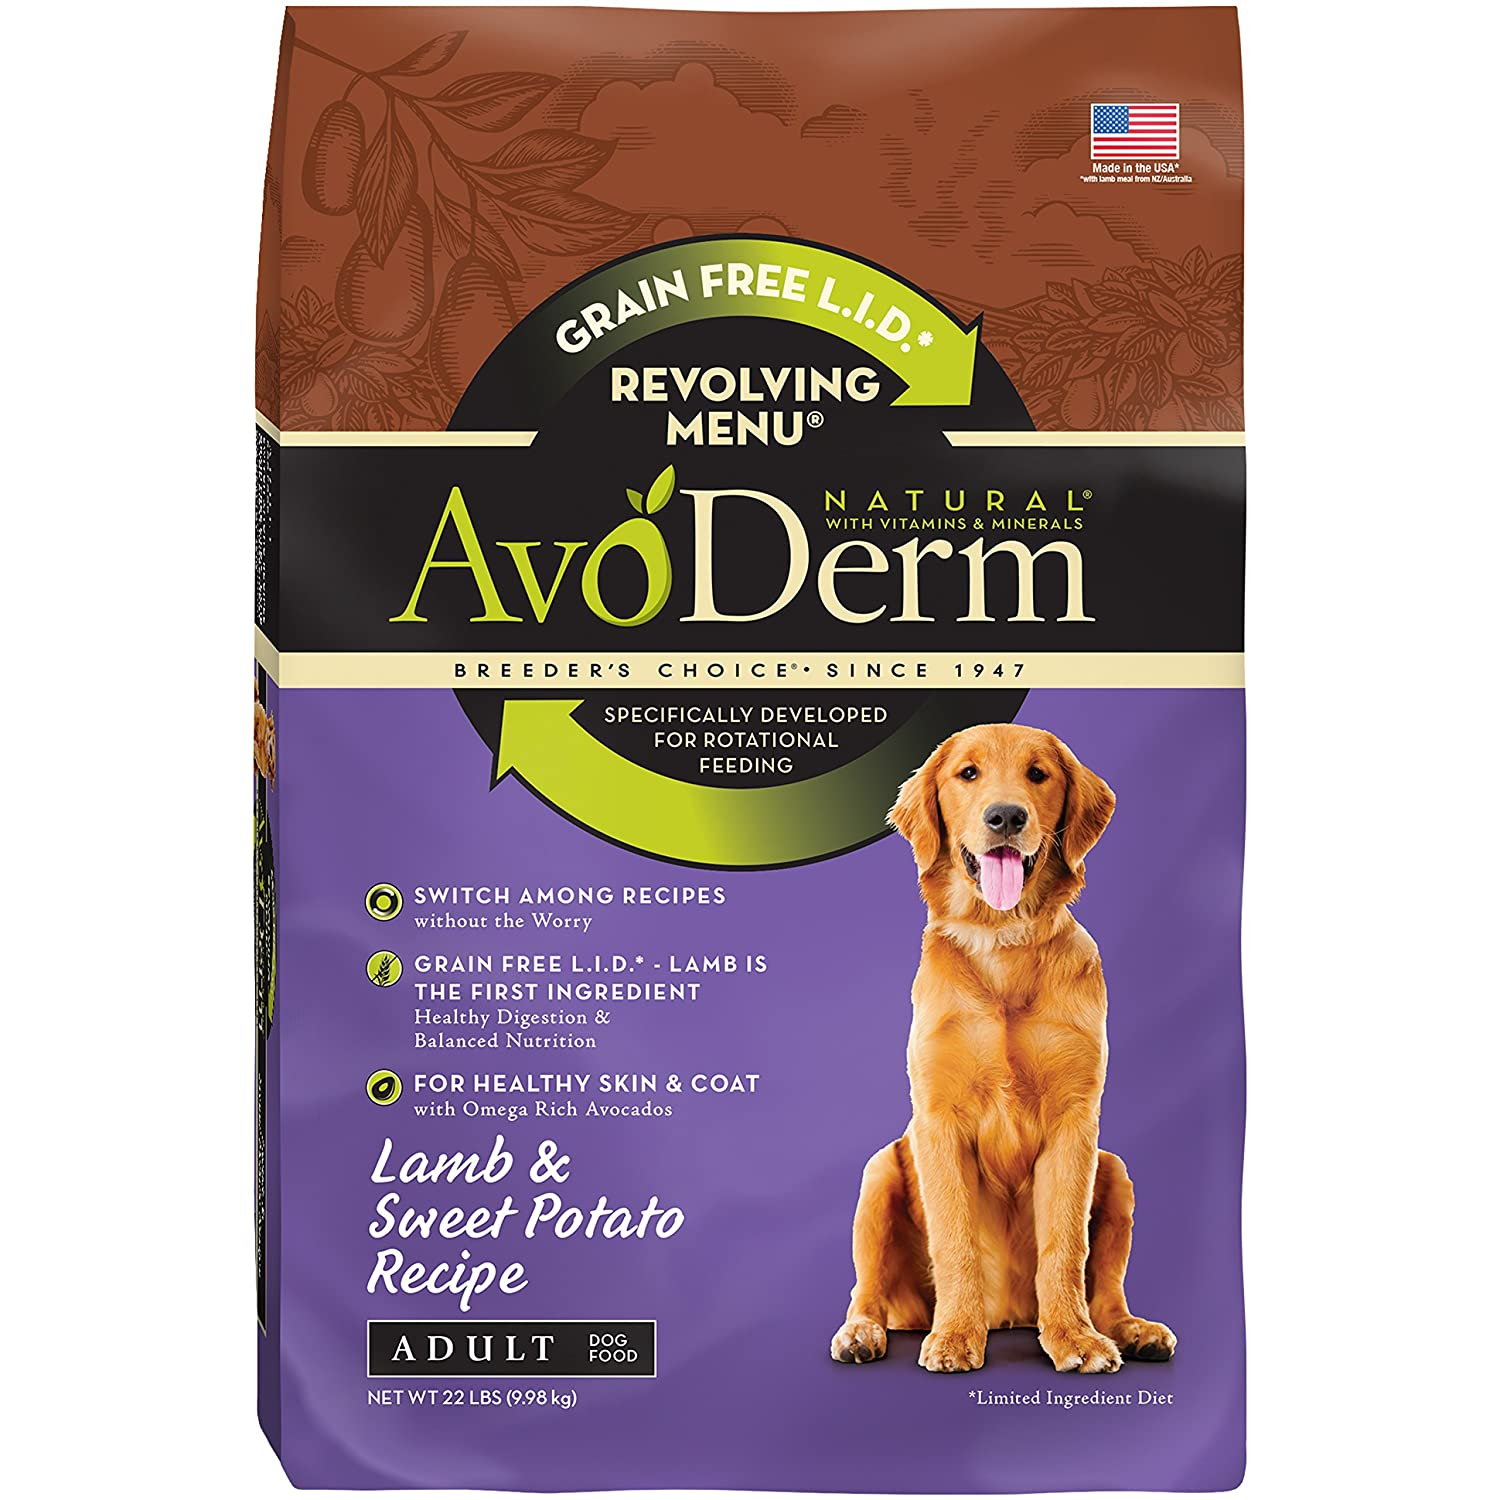 AvoDerm Natural Revolving Menu Dry Dog Food for Rotational Feeding, Food Intolerance and Sensitivities, Lamb Sweet Potato